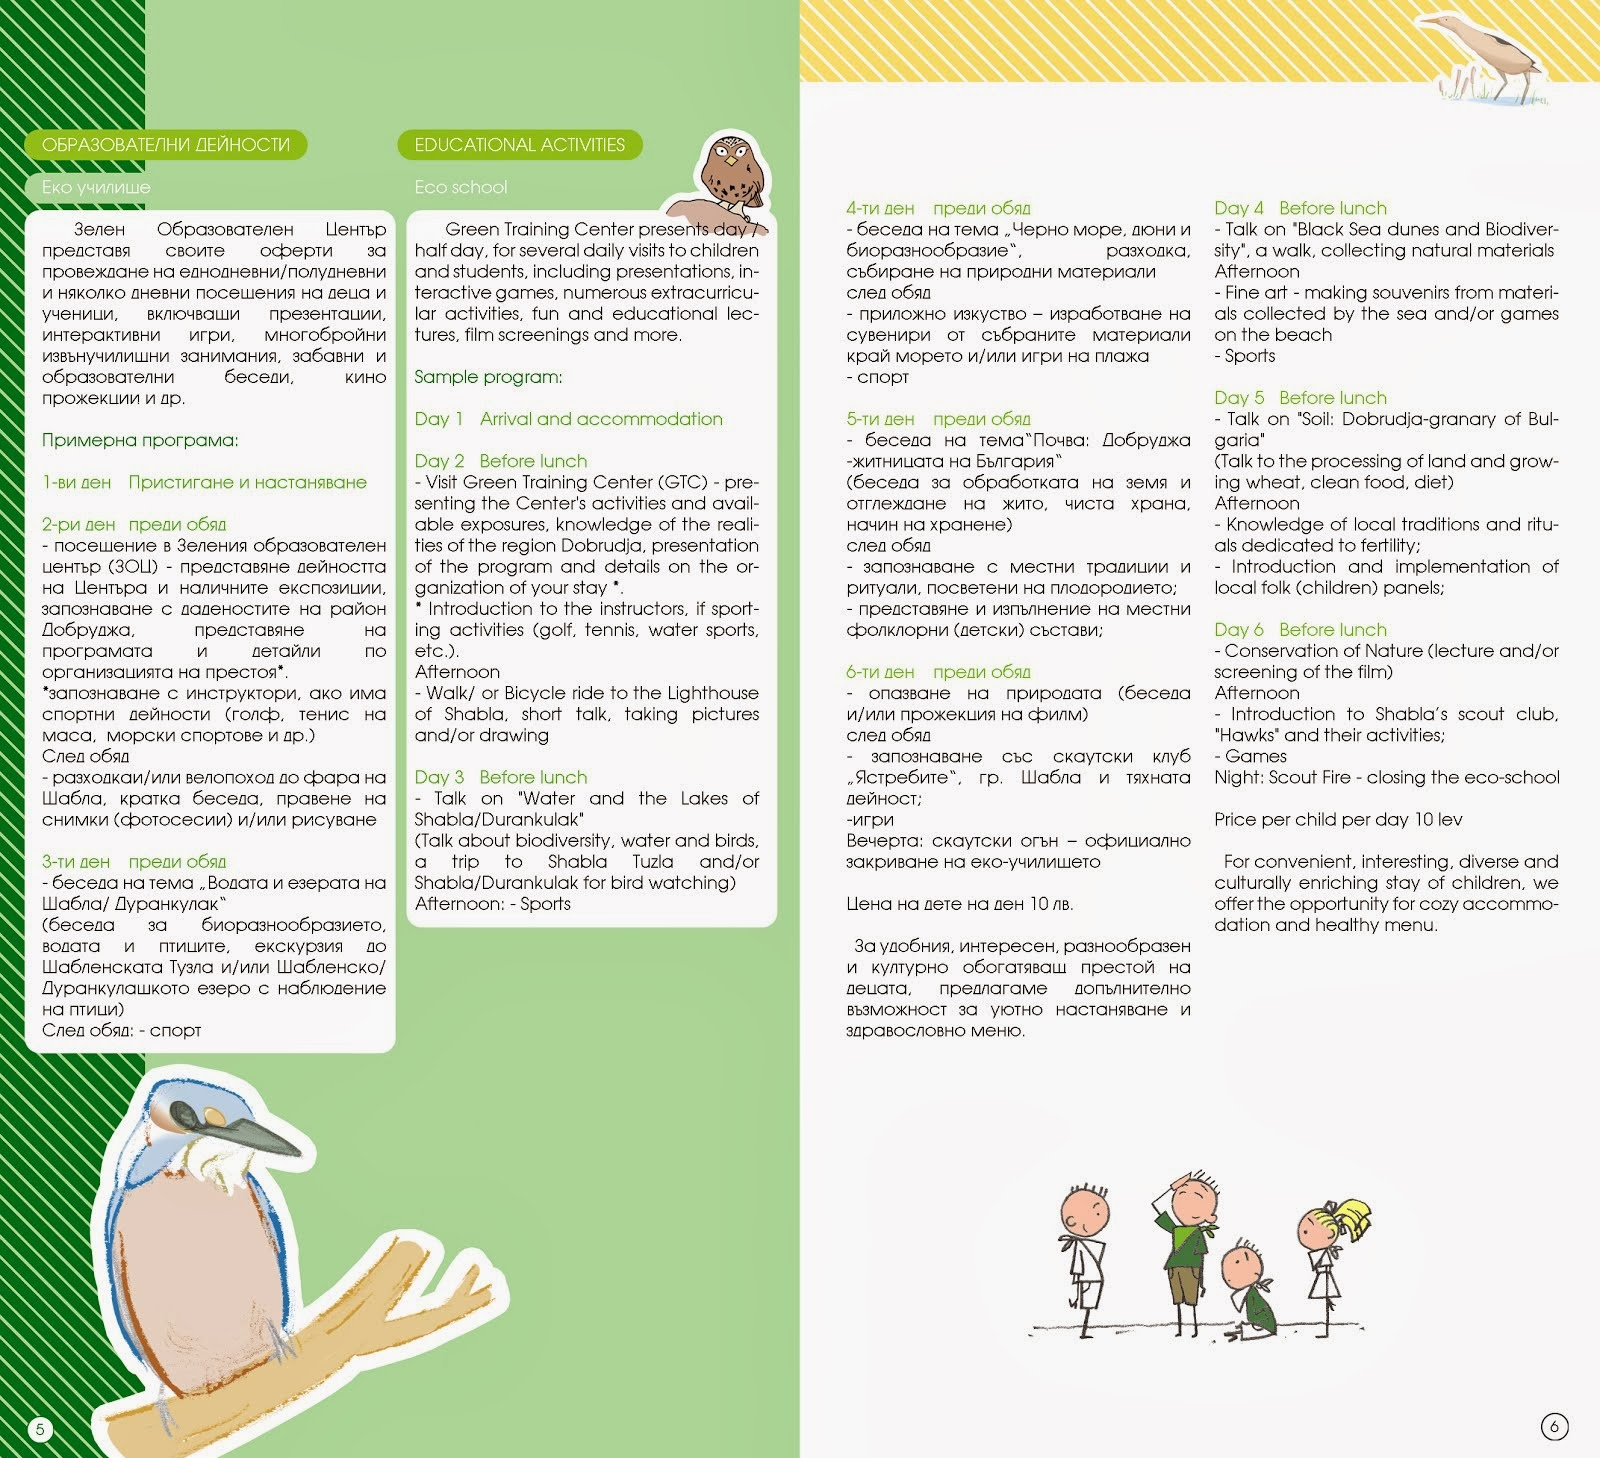 GTC Shabla Brochure, Design and Illustrations, 2012